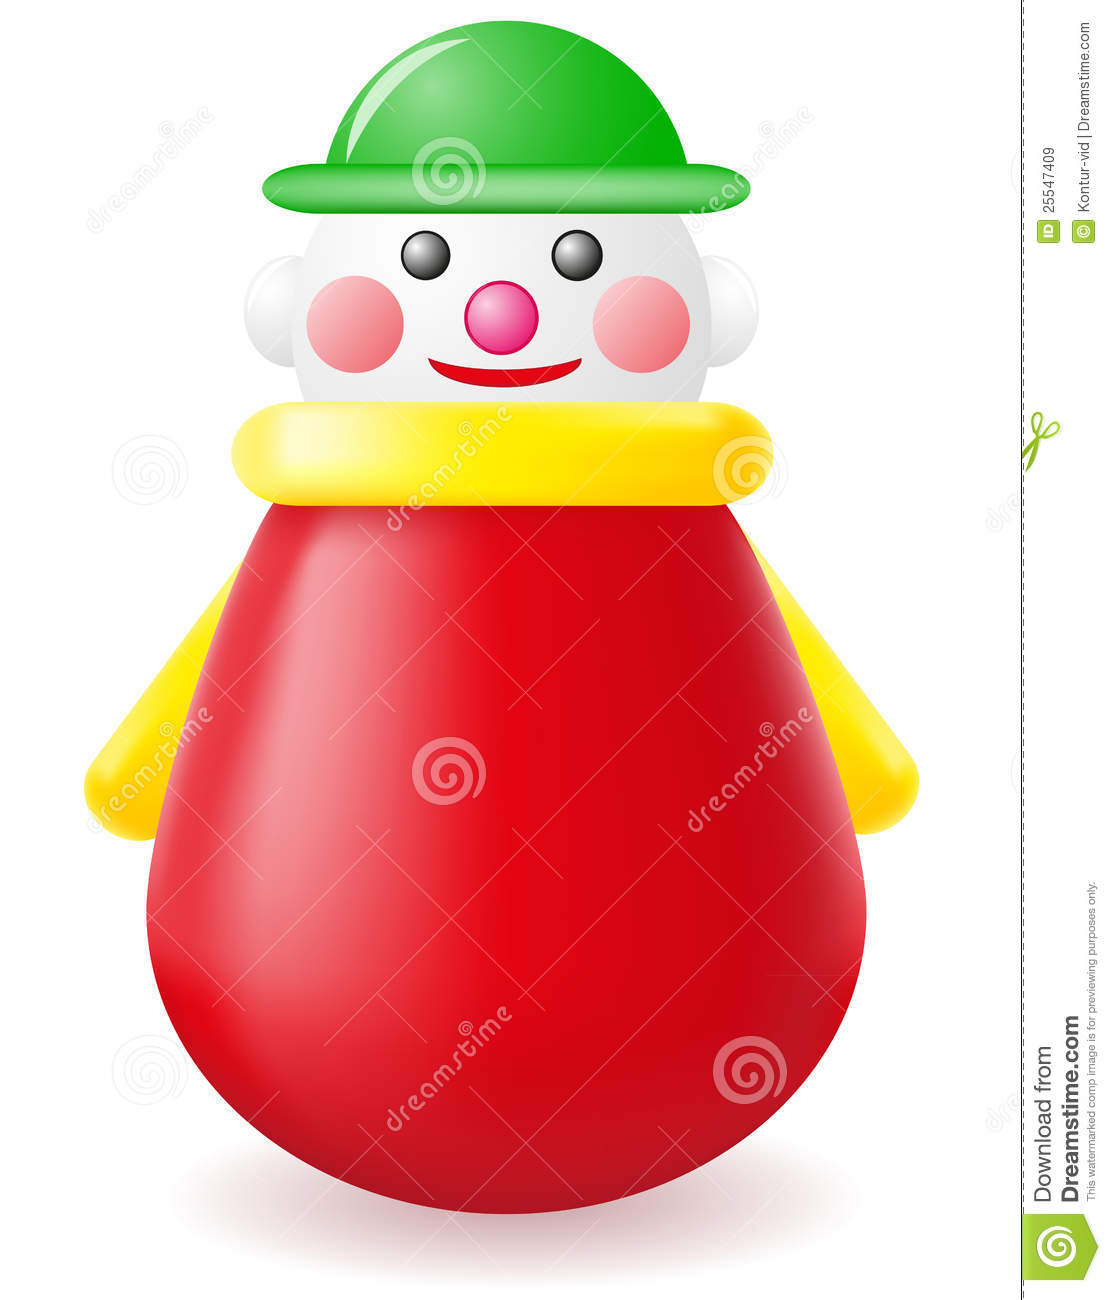 Roly-poly Doll Toy Vector Illustration Royalty Free Stock Images ...